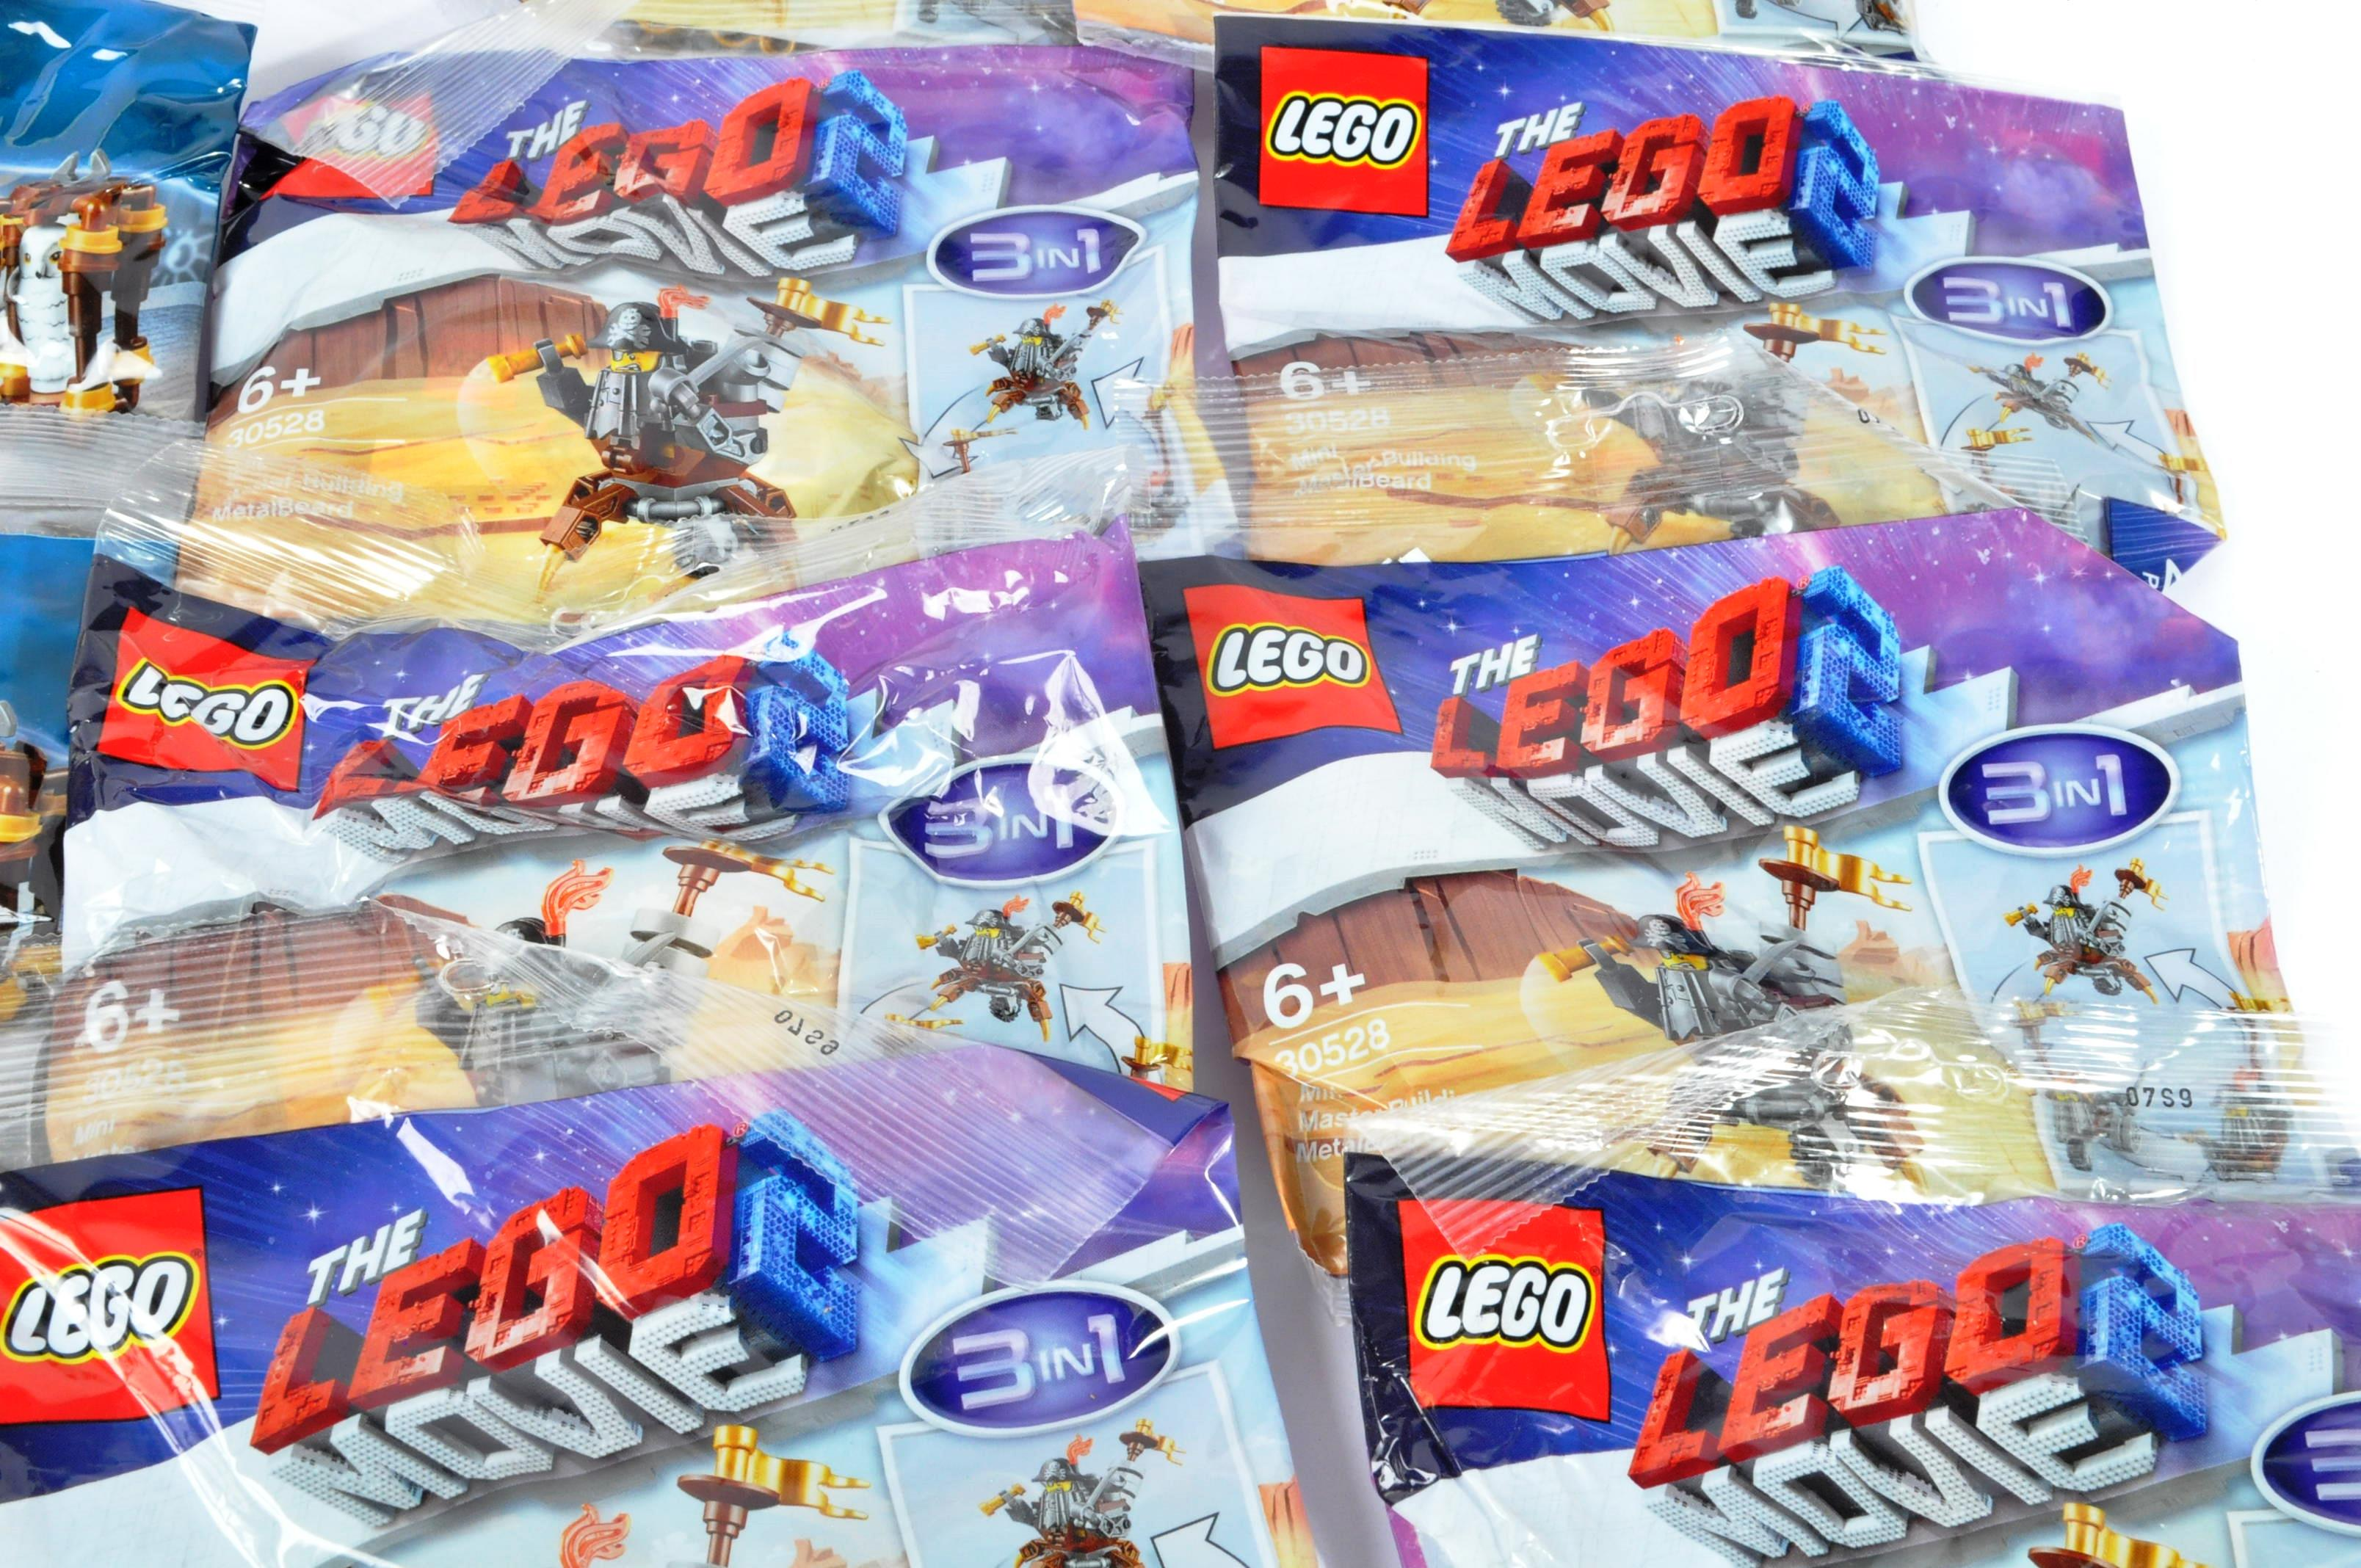 LEGO - LARGE COLLECTION OF LEGO MOVIE, CITY & HARRY POTTER SETS - Image 5 of 5